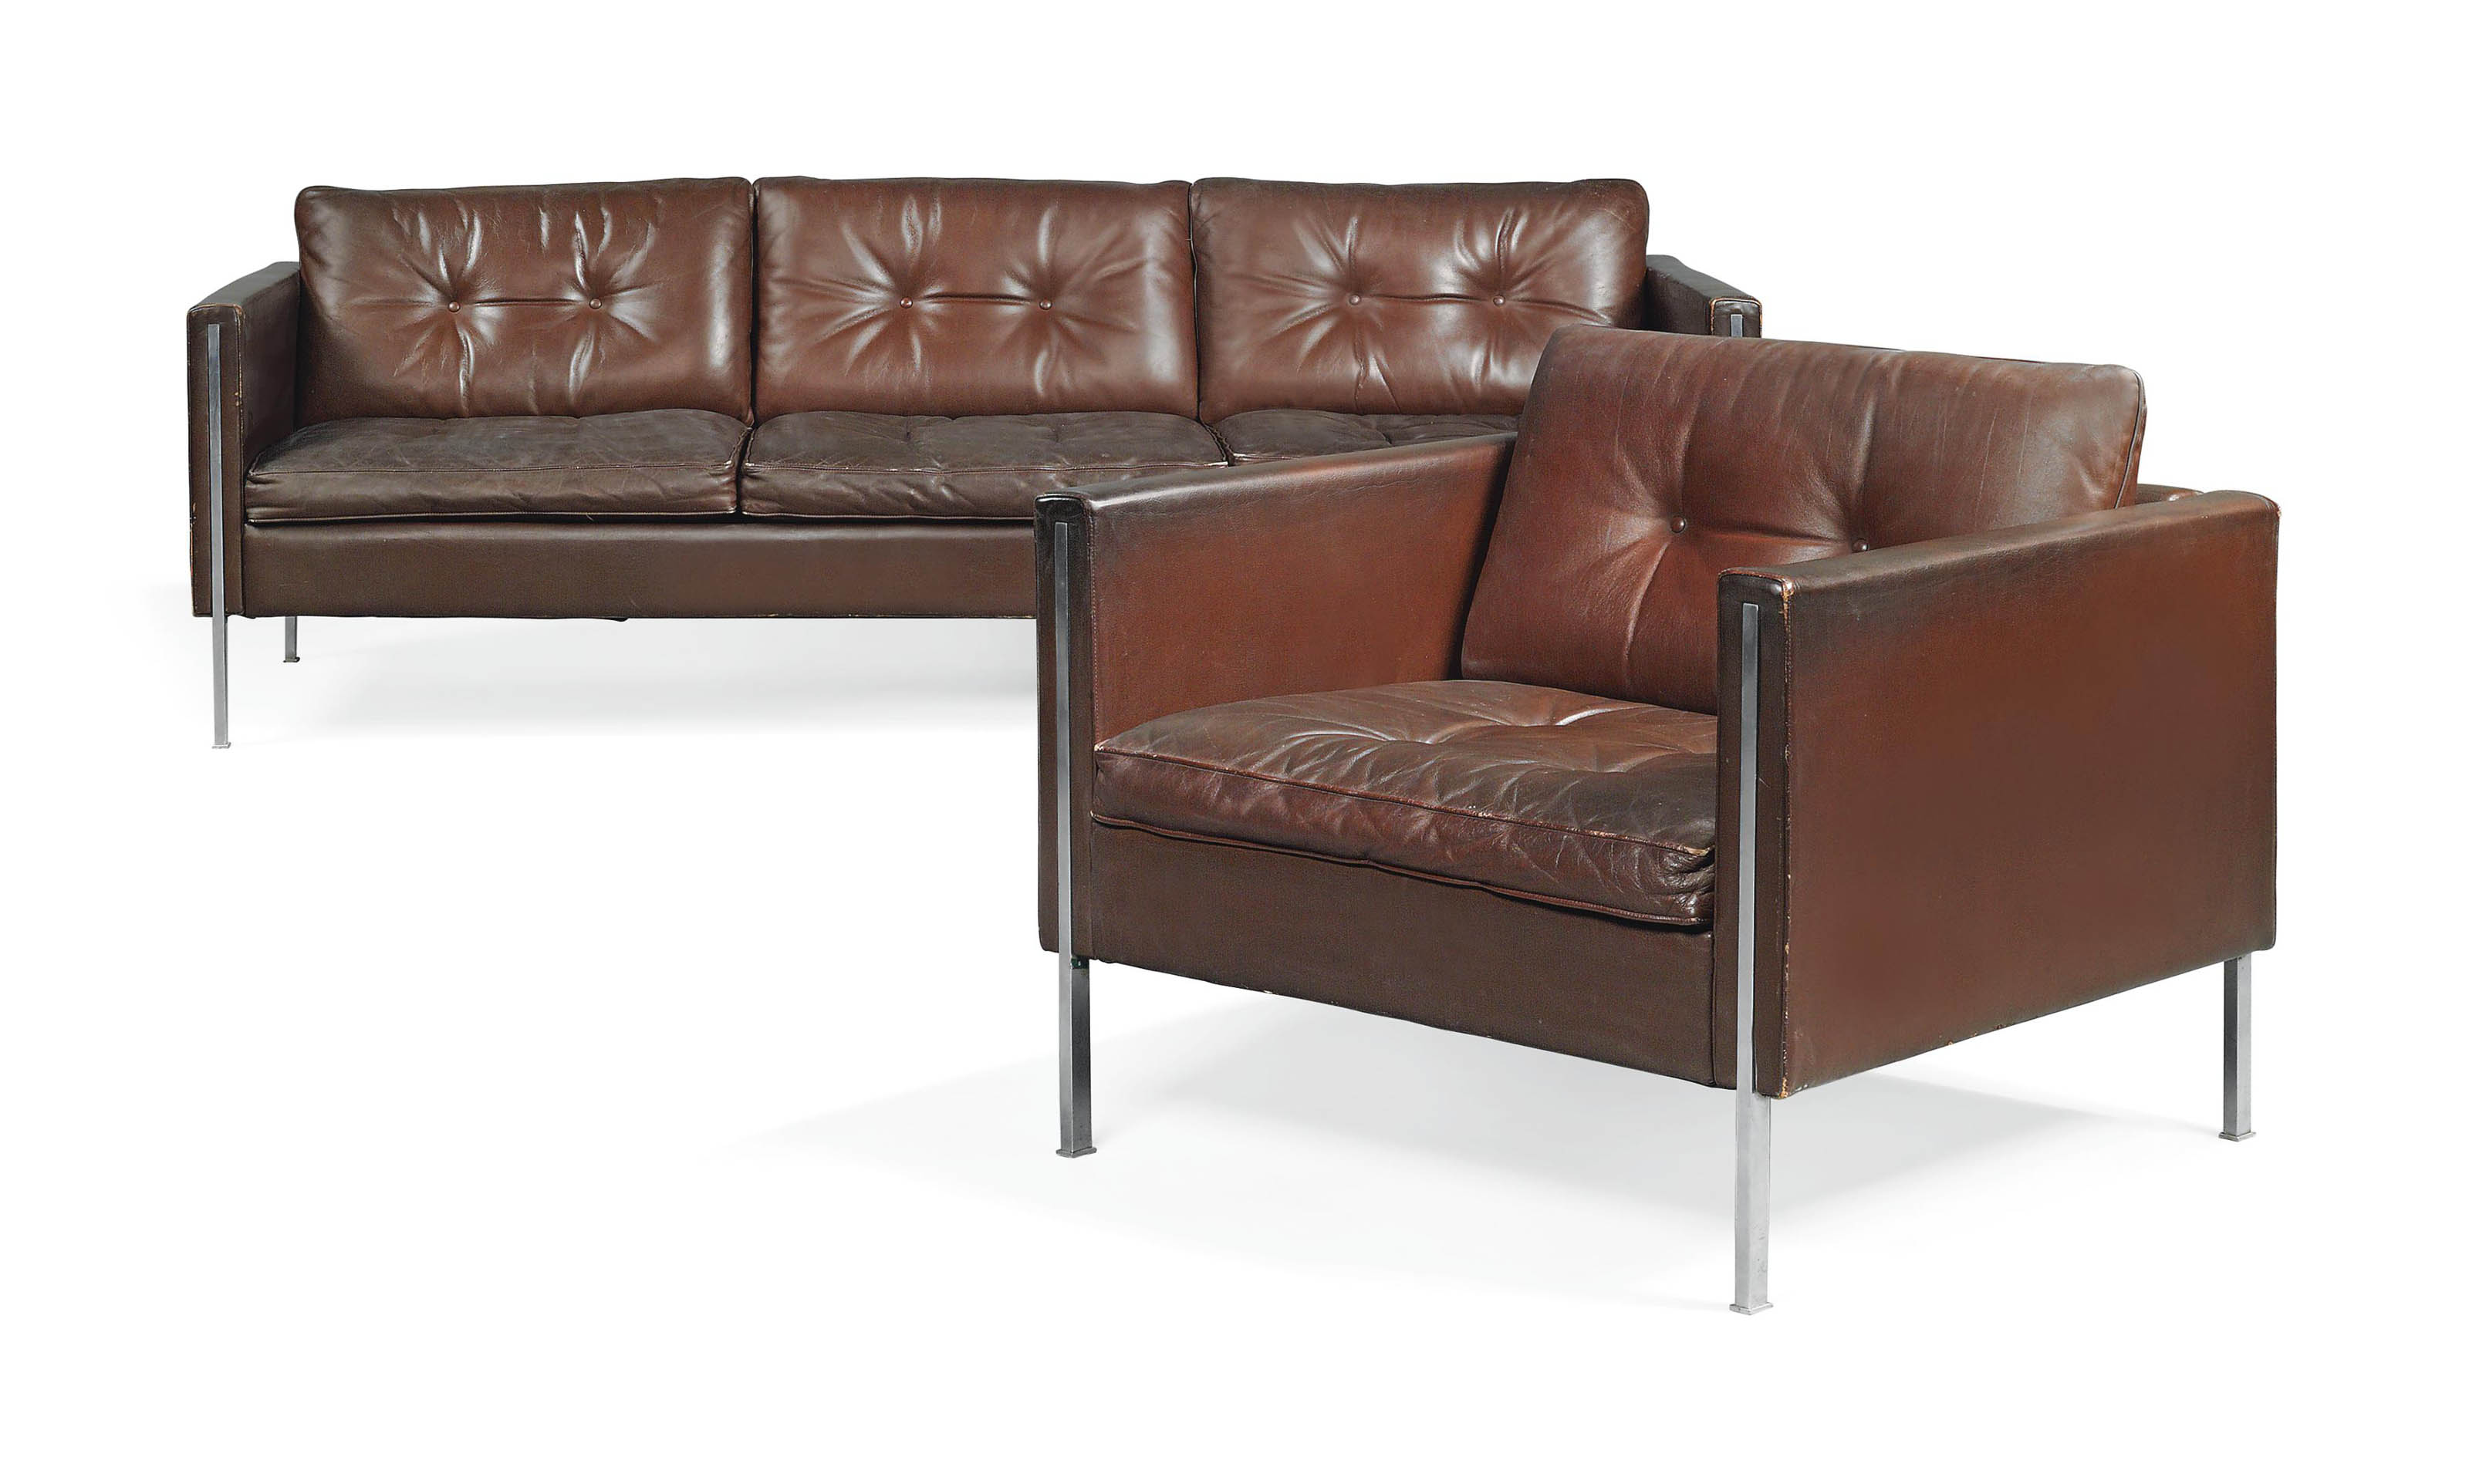 A PIERRE PAULIN LEATHER AND STAINLESS STEEL '442' SOFA AND ARMCHAIR